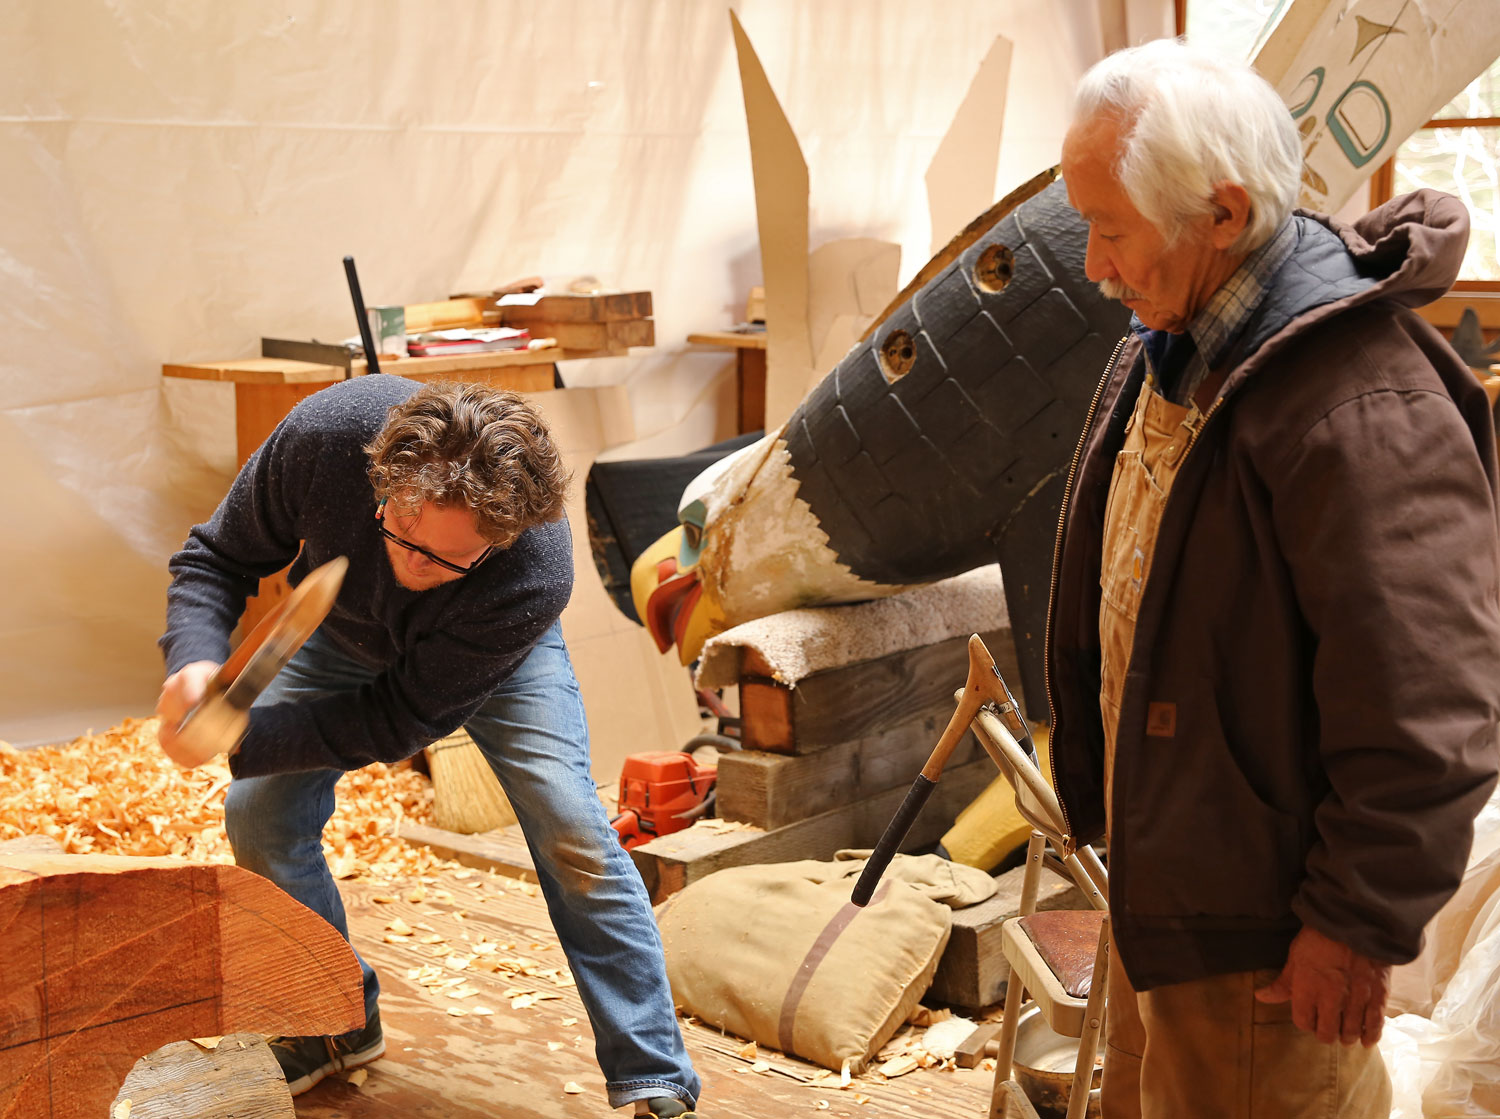 """Donald Varnell uses an adze to refine a form as Nathan Jackson watches. They are reproducing the eagle carving """"Thundering Wings"""" in the background. The eagle's wings were removed to transport it to the carving shed."""